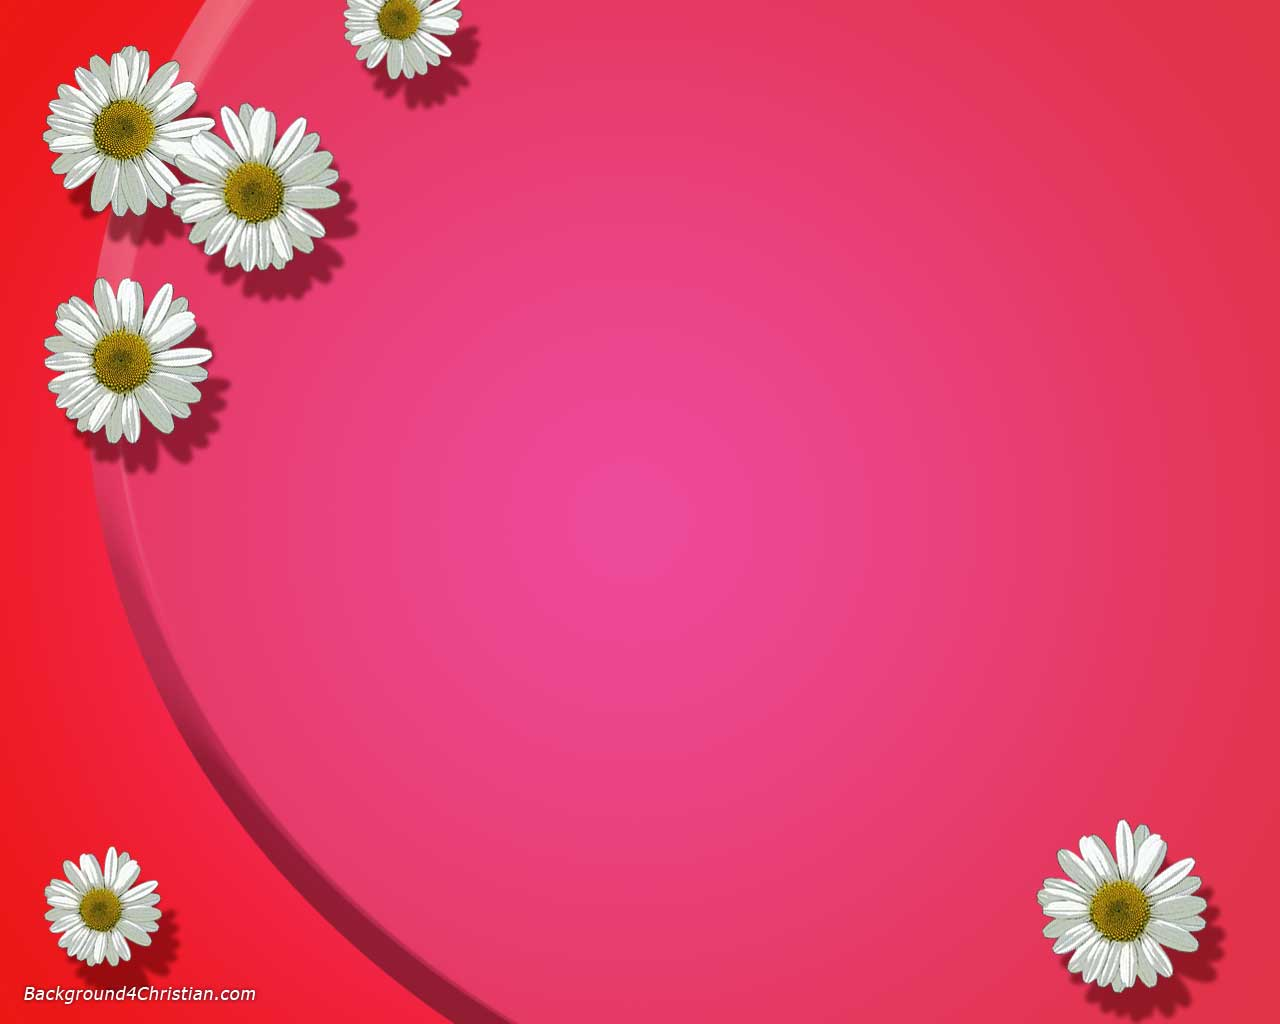 theme this flower powerpoint theme also good for christian ppt worship